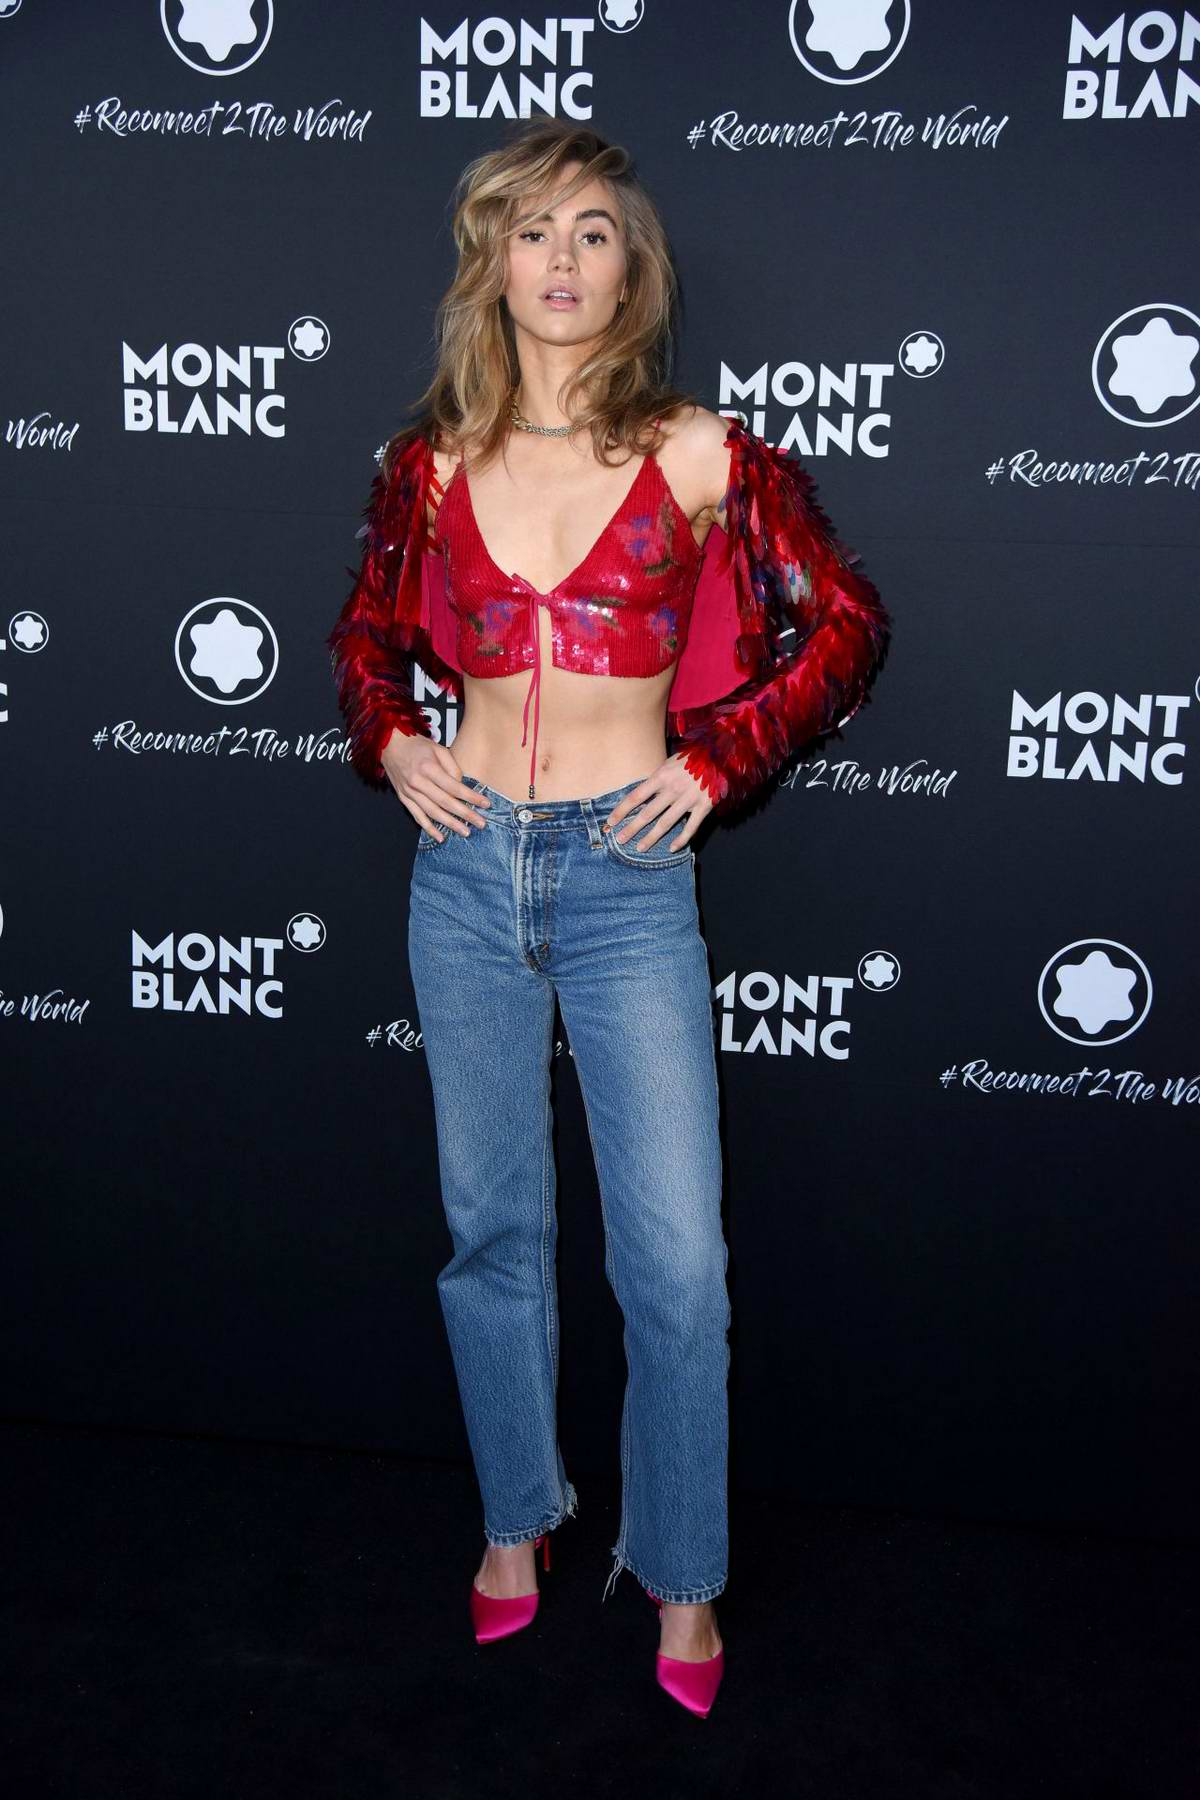 Suki Waterhouse attends Montblanc #Reconnect 2 The World Party at Metropol-Theater in Berlin-Mitte, Berlin, Germany